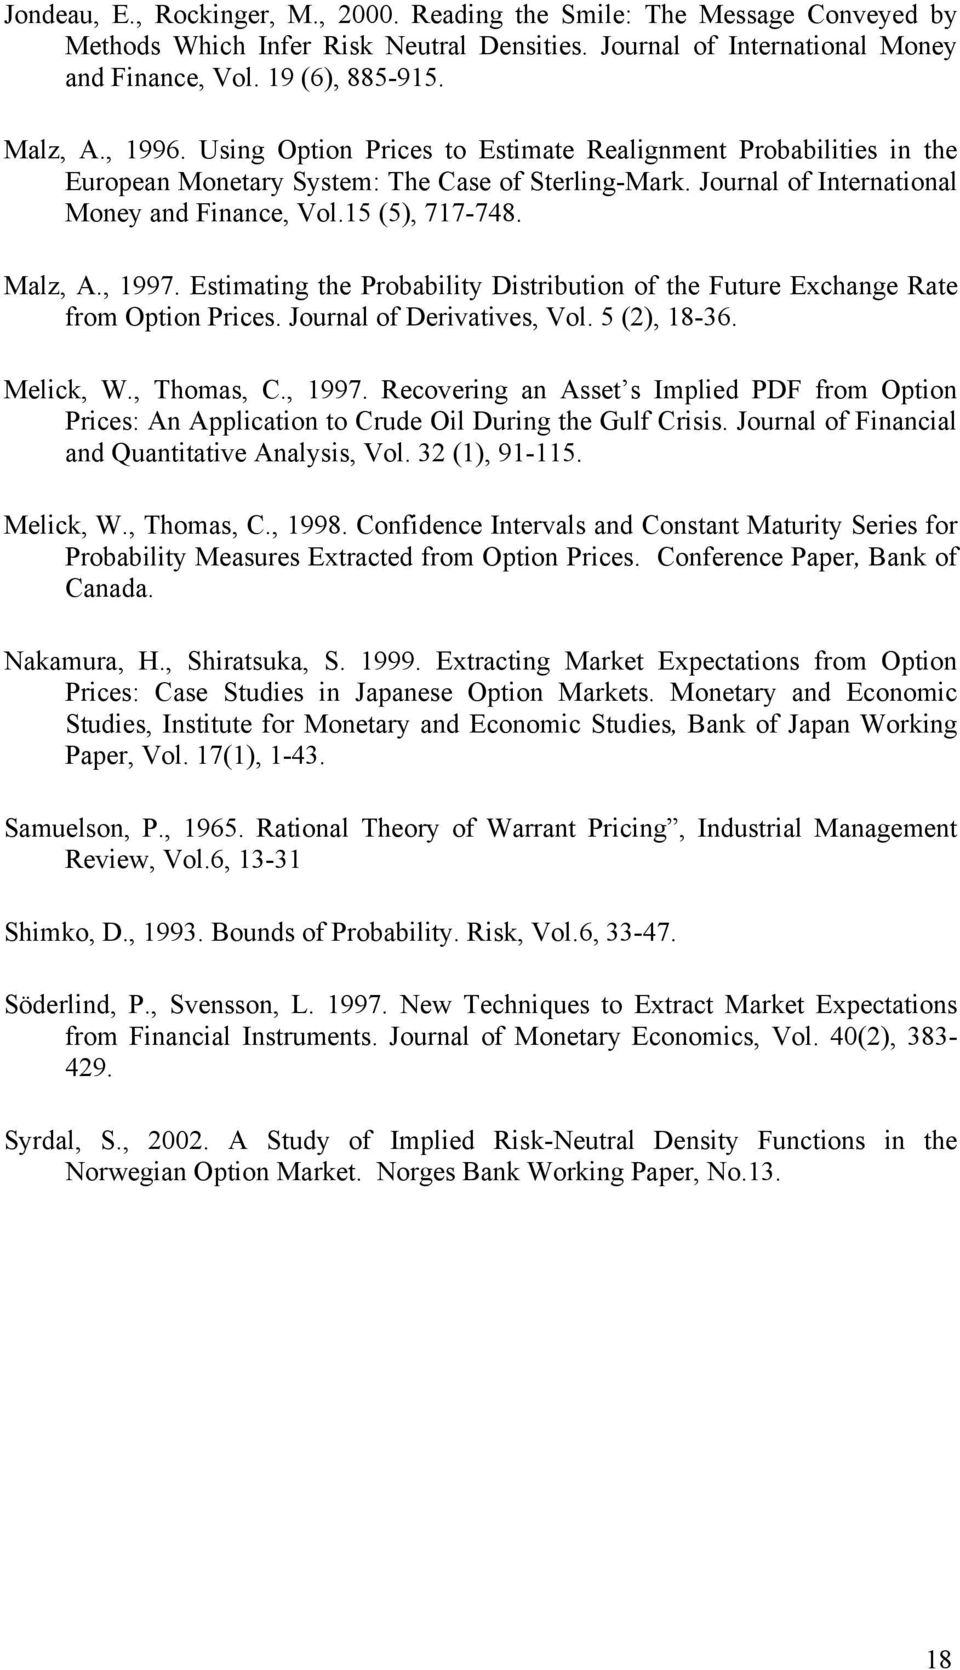 Estimating the Pobability Distibution of the Futue Exchange Rate fom Option Pices. Jounal of Deivatives Vol. 5 (2) 18-36. Melick W. Thomas C. 1997.